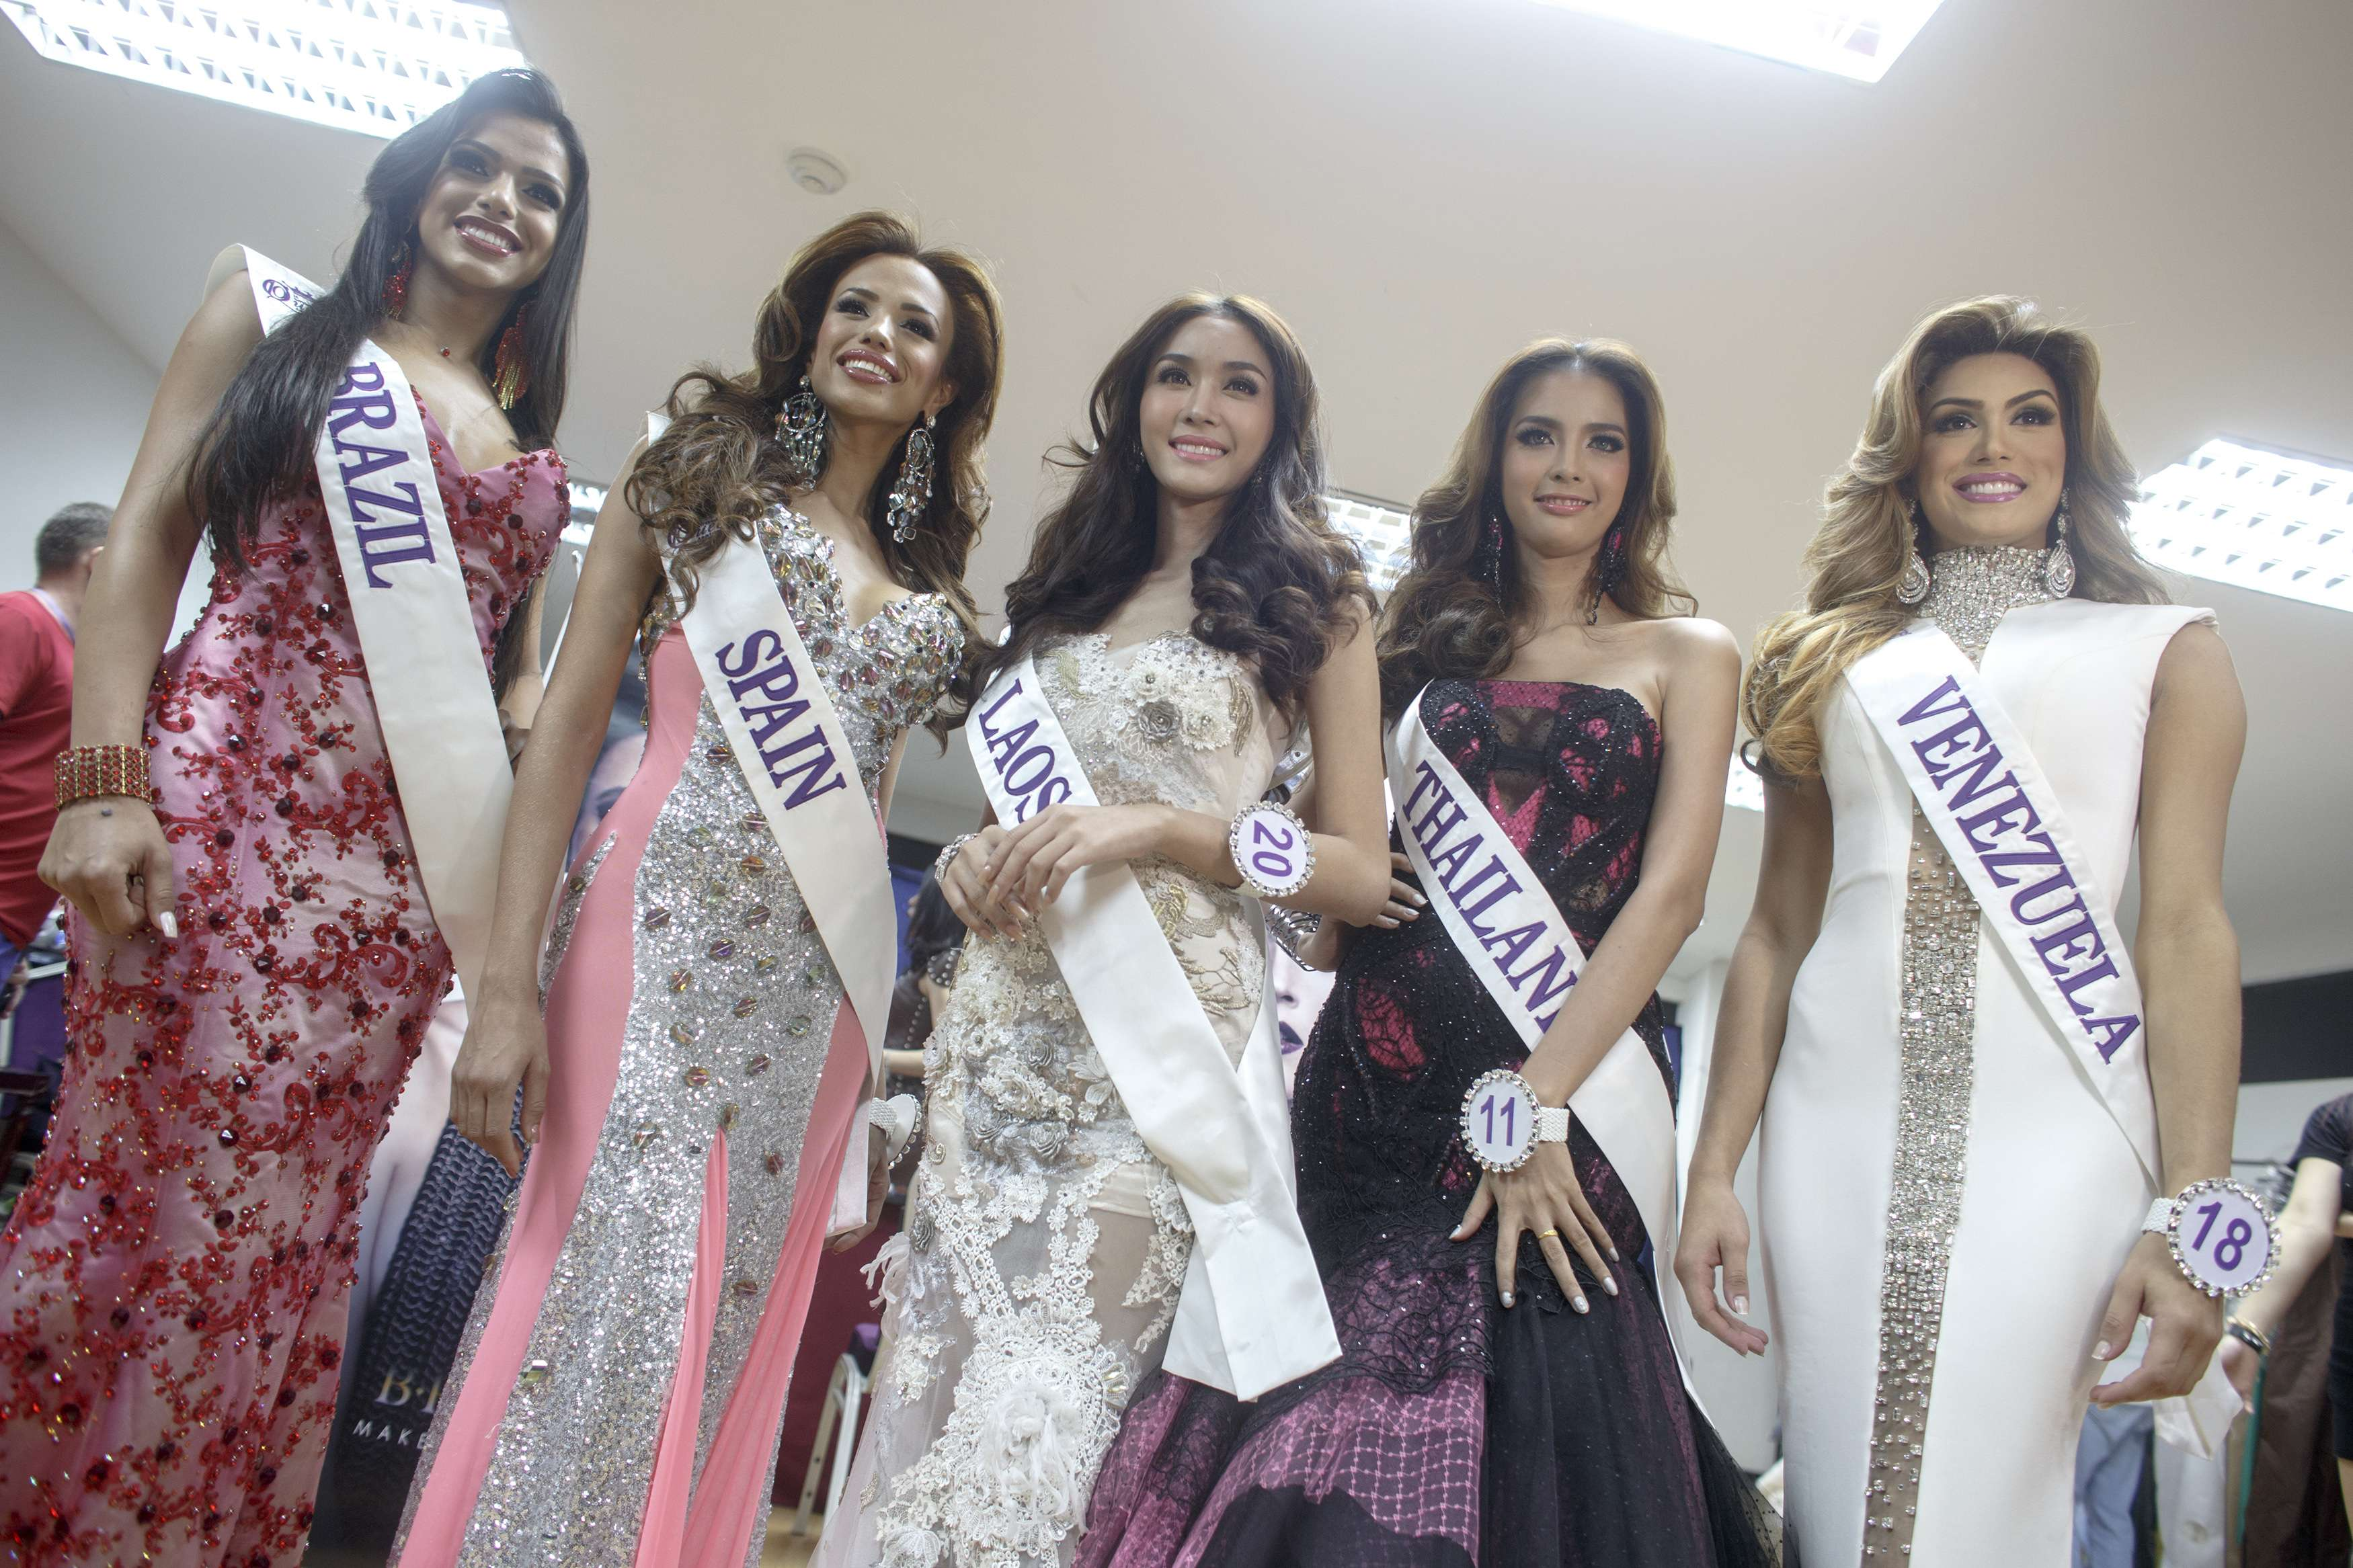 India's Transgender Beauty Queen Once Washed Dishes, Survived Assault